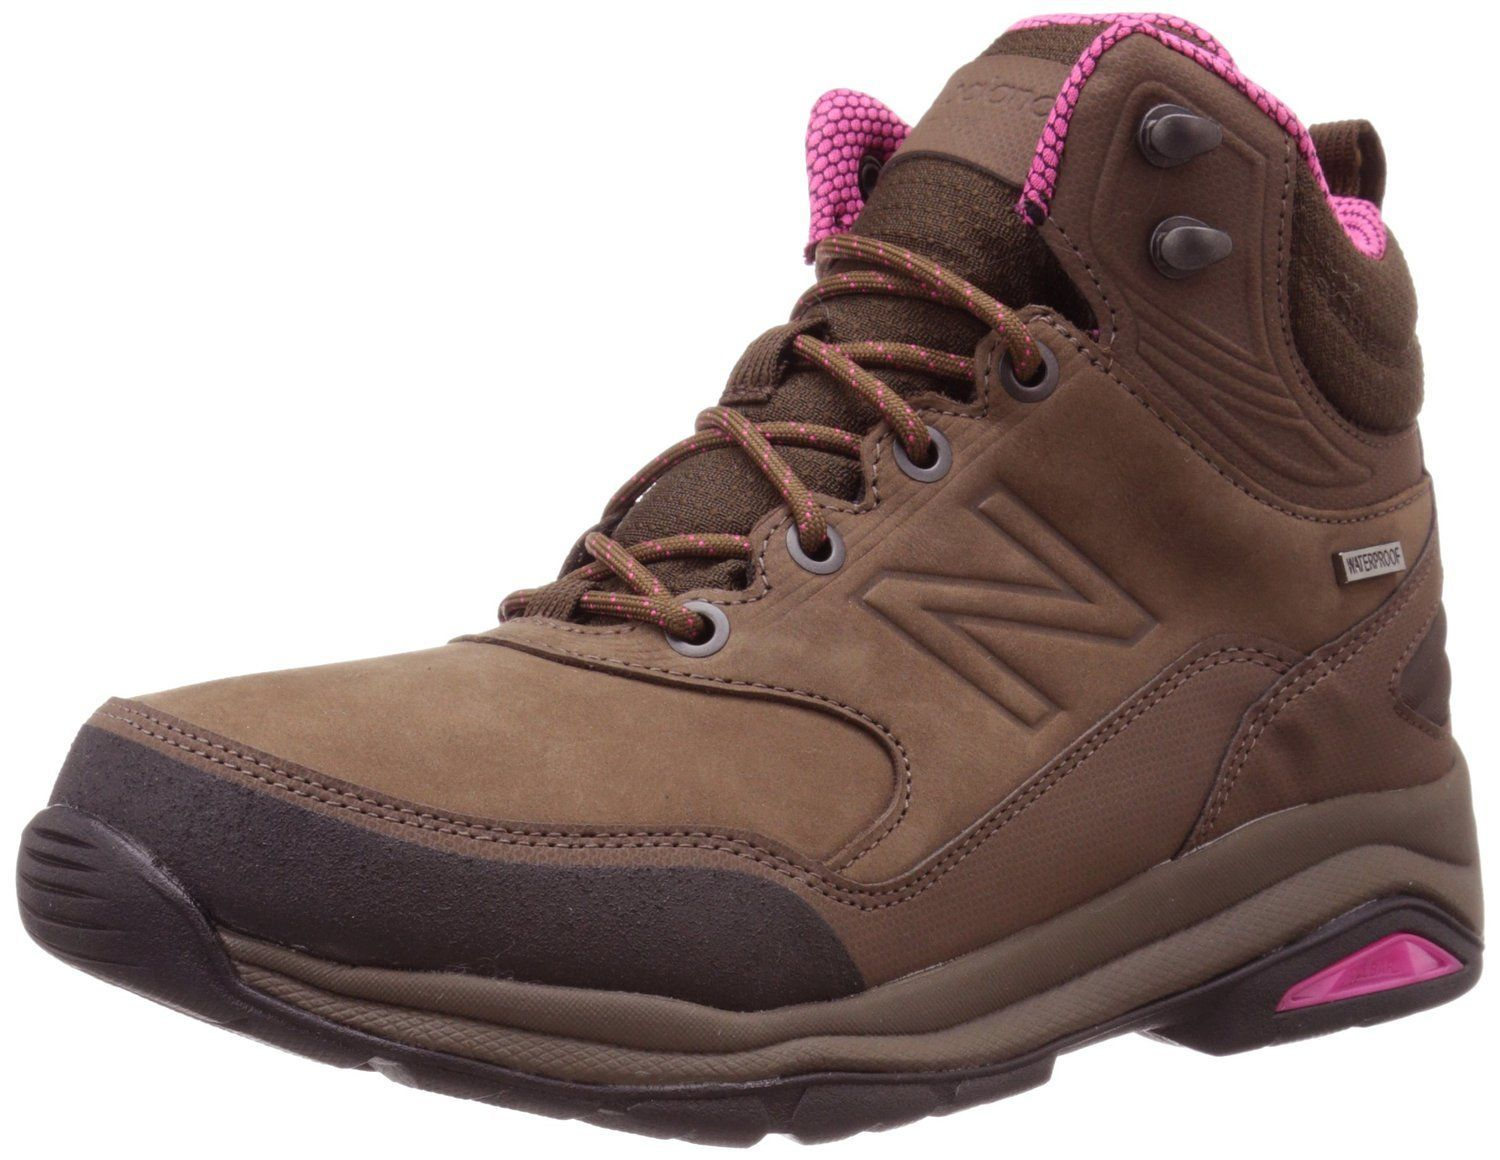 The Ultimate Guide On The Best Hiking Boots For Women